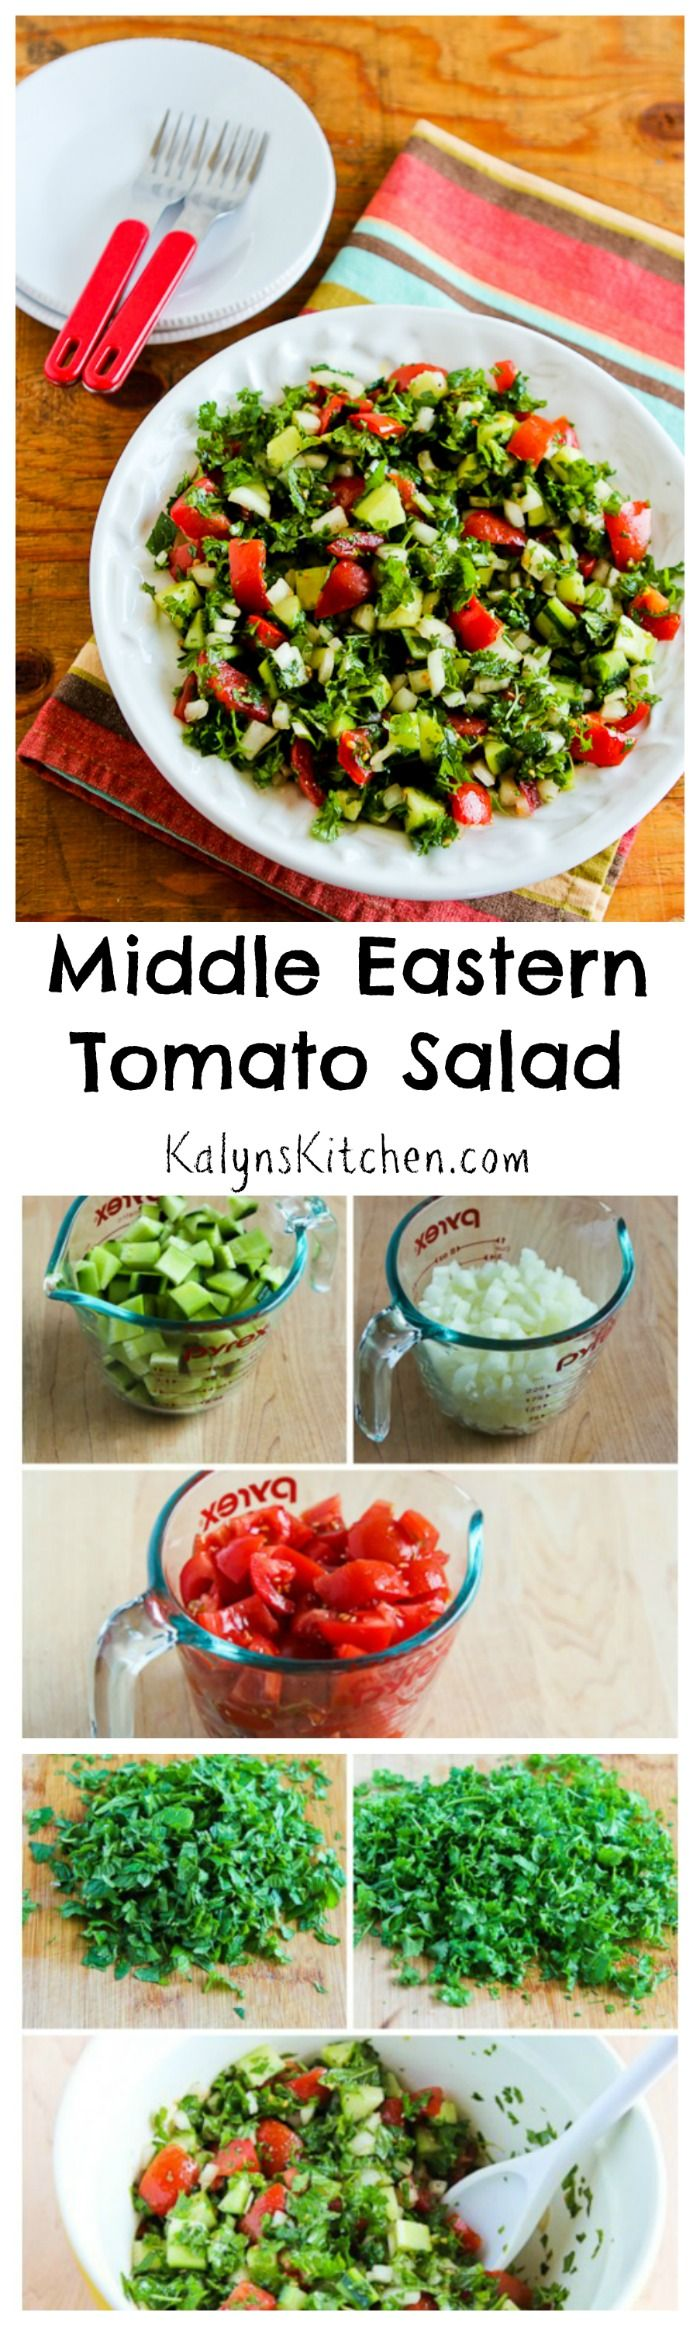 I learned to make this classic Middle Eastern Tomato Salad from my Iranian friend Massoud, and this fantastic salad is something I've made for holiday parties and summer dinners for years and years. Every middle eastern cook has a slightly different version of this salad, but I like plenty of freshly chopped parsley and mint, plus lots of lemon to make the flavors sing! [from KalynsKitchen.com]